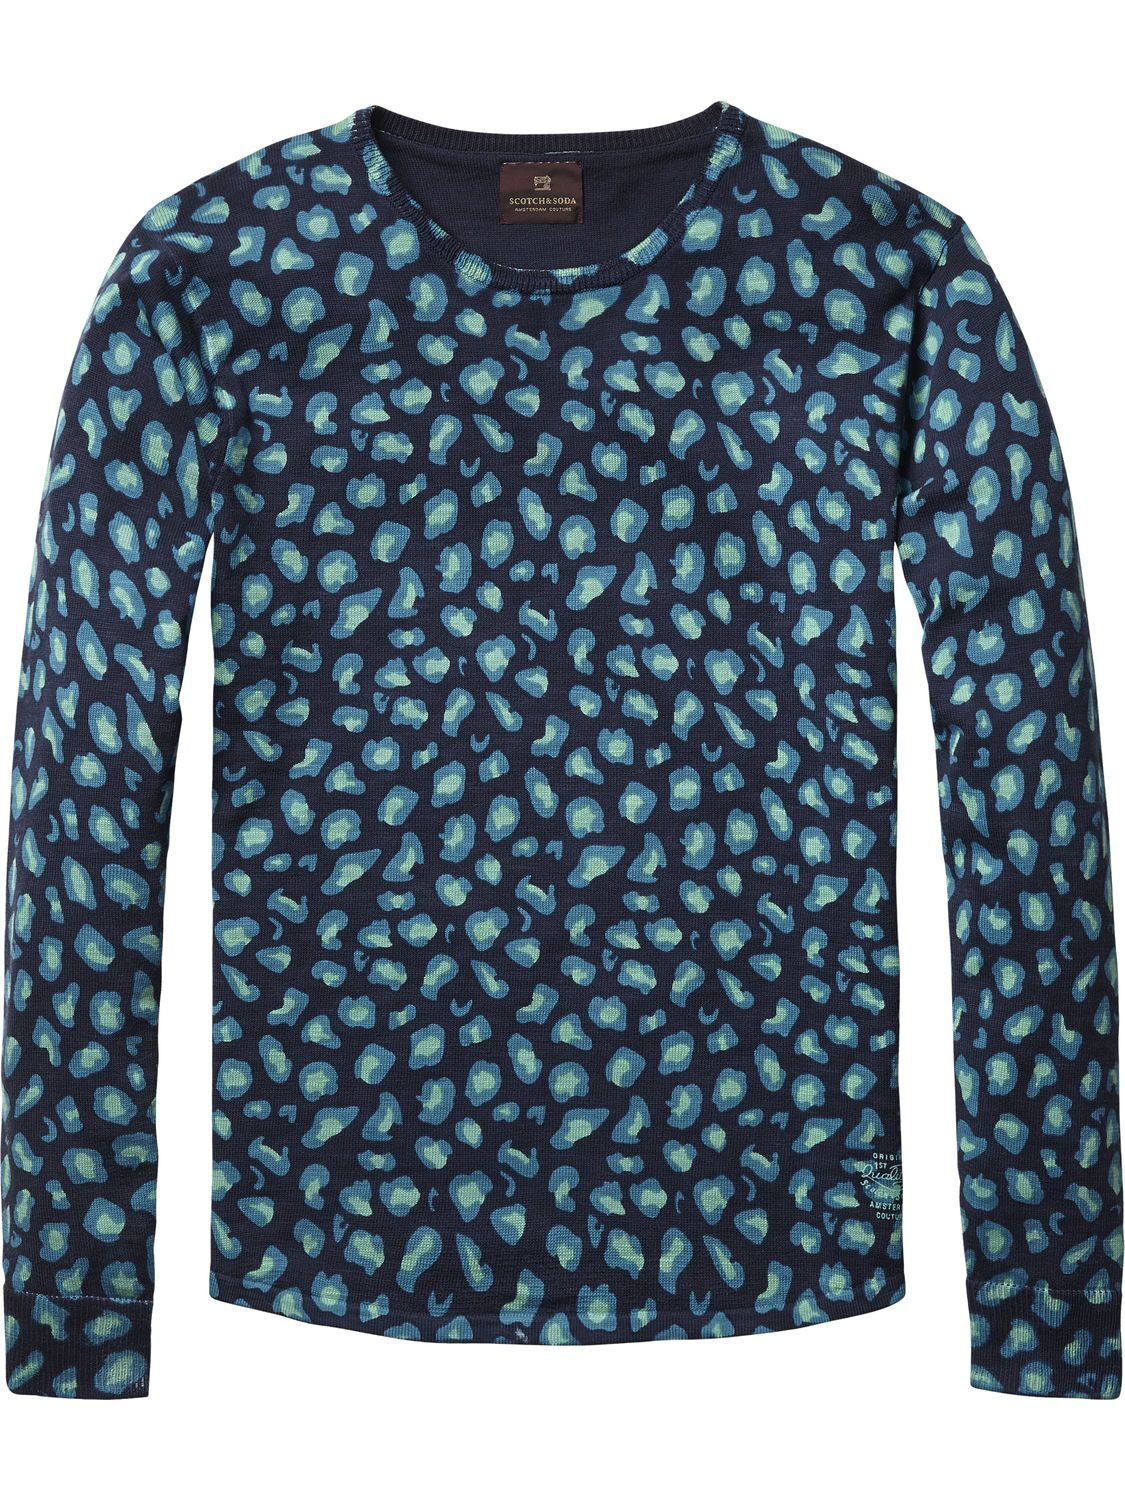 Pullover | Men's Clothing at Scotch & Soda